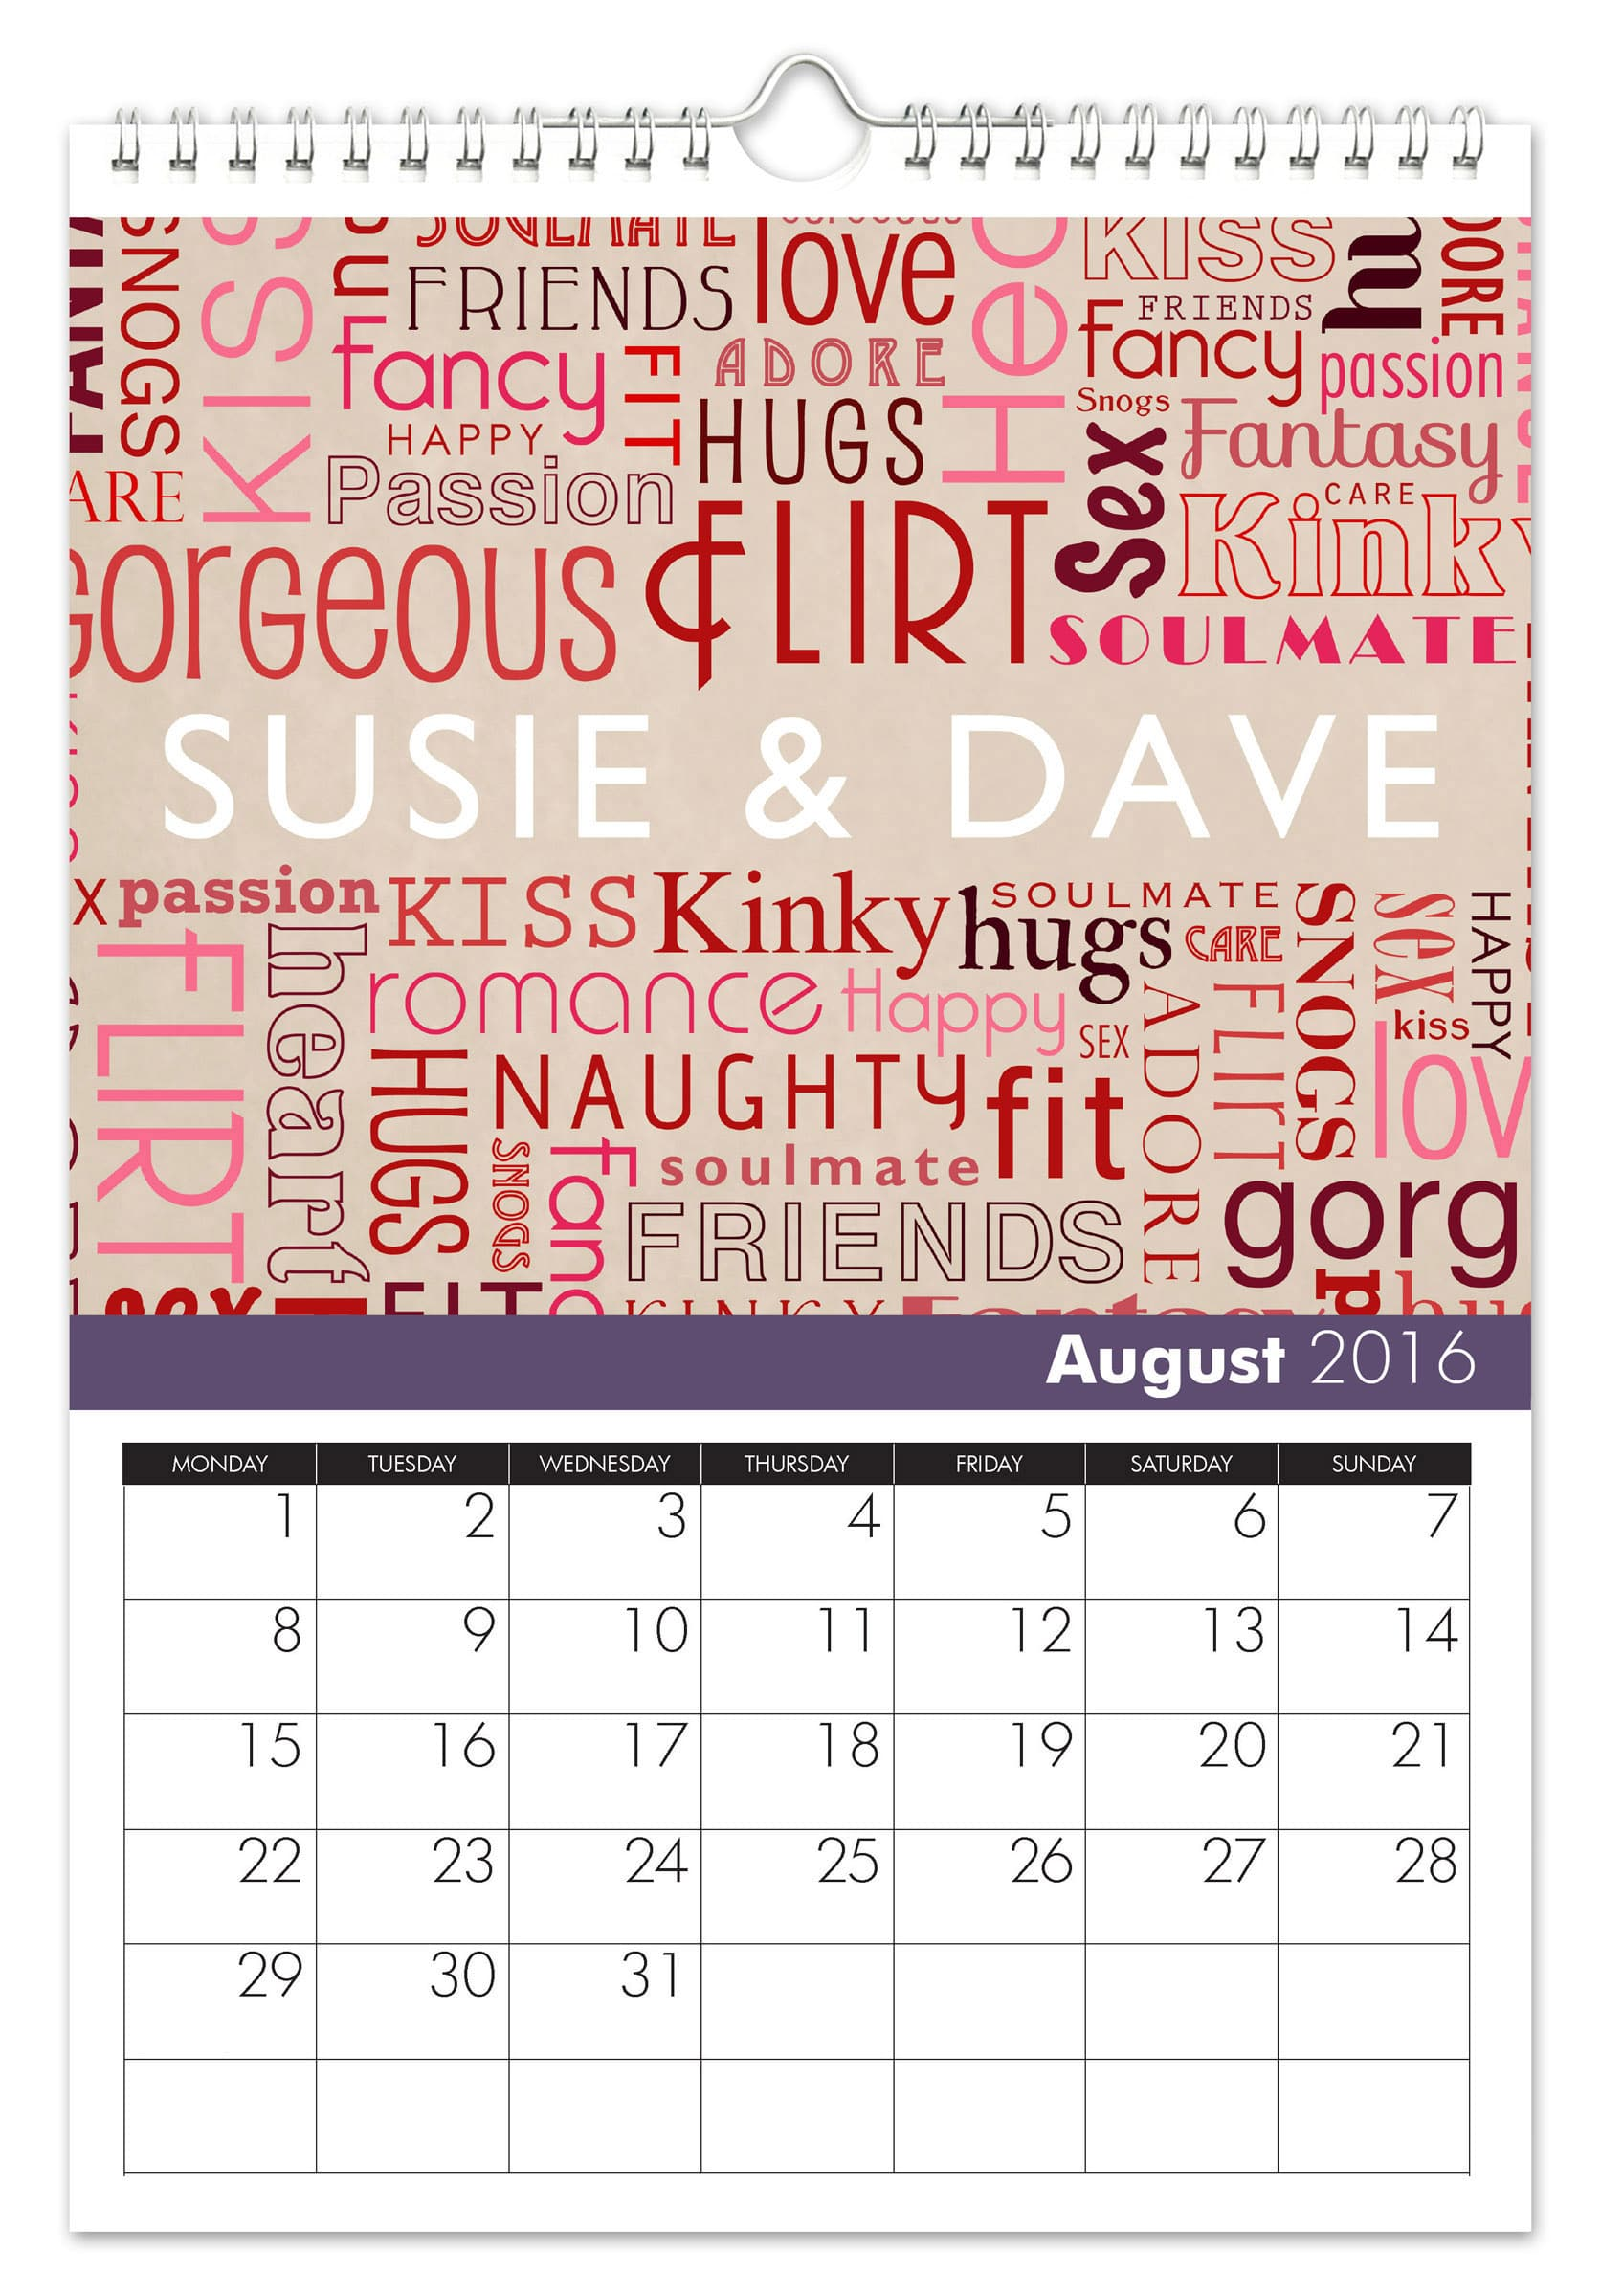 Personalized Anniversary Calendar | Signature Gifts